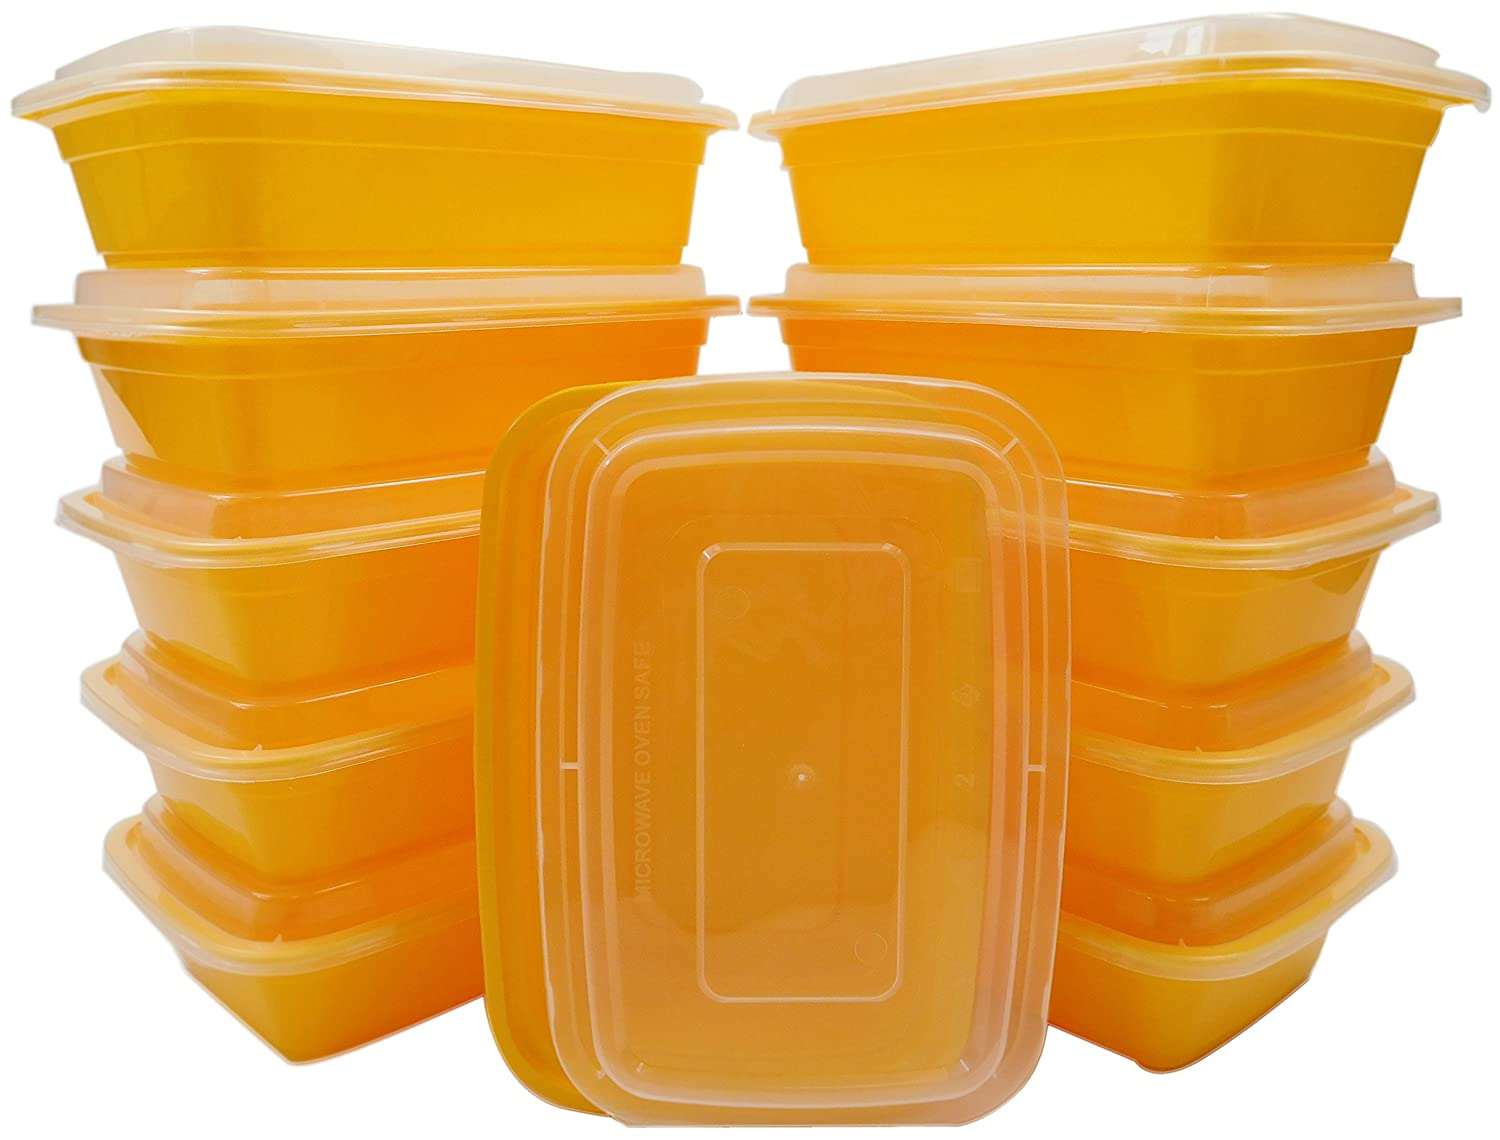 Table To Go 50-Pack Bento Lunch Boxes with Lids, 1 Compartment/ 34 oz, Yellow 612409787378